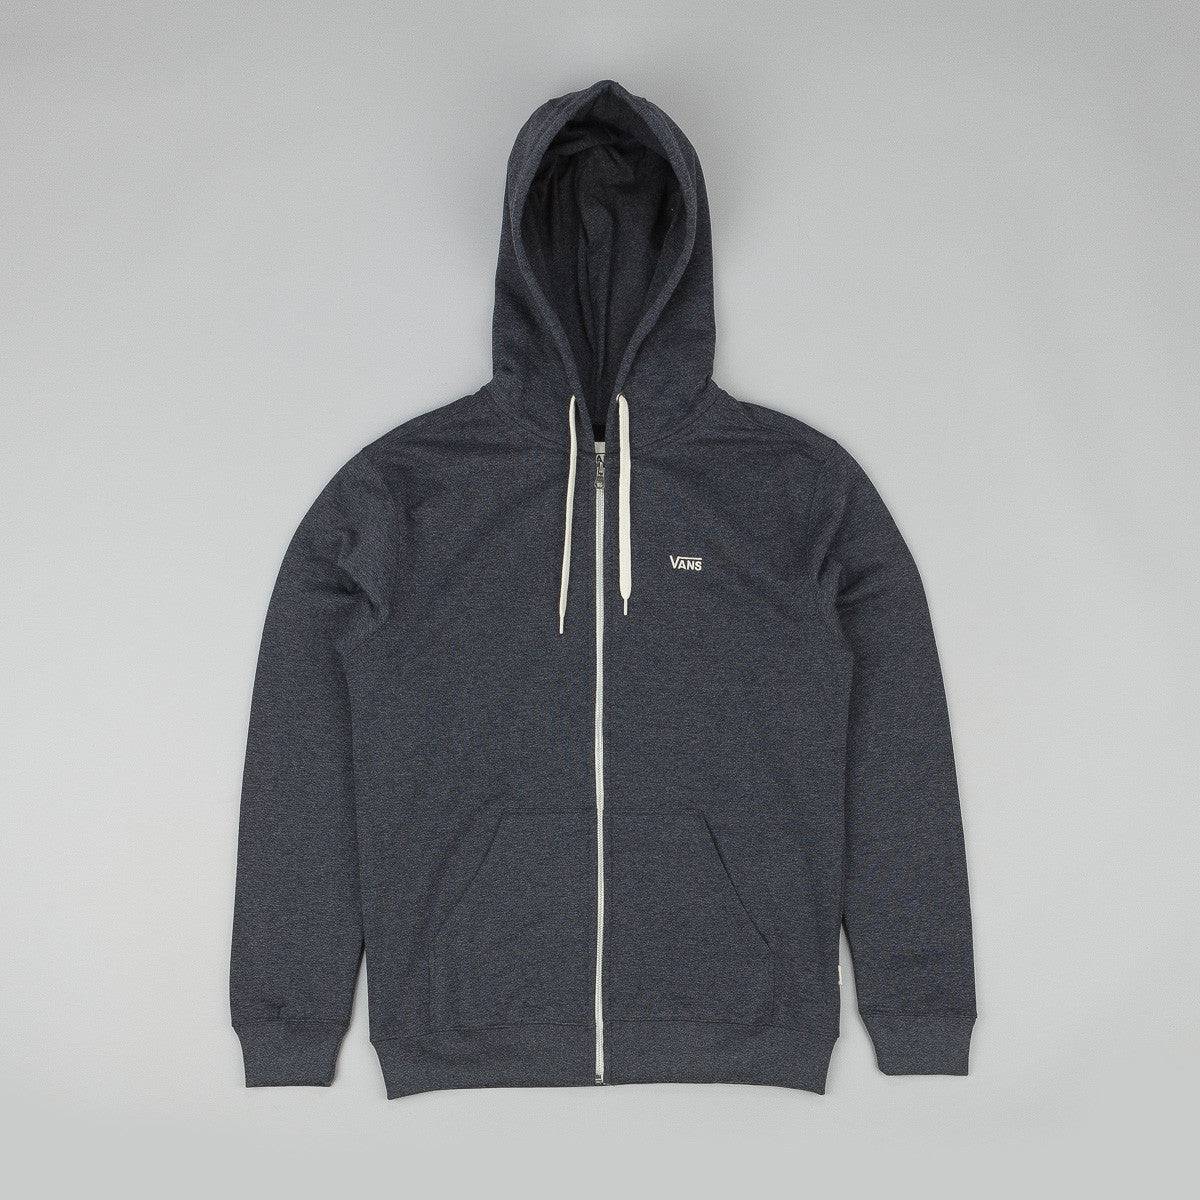 Vans Core Zip Hooded Sweatshirt Black Heather